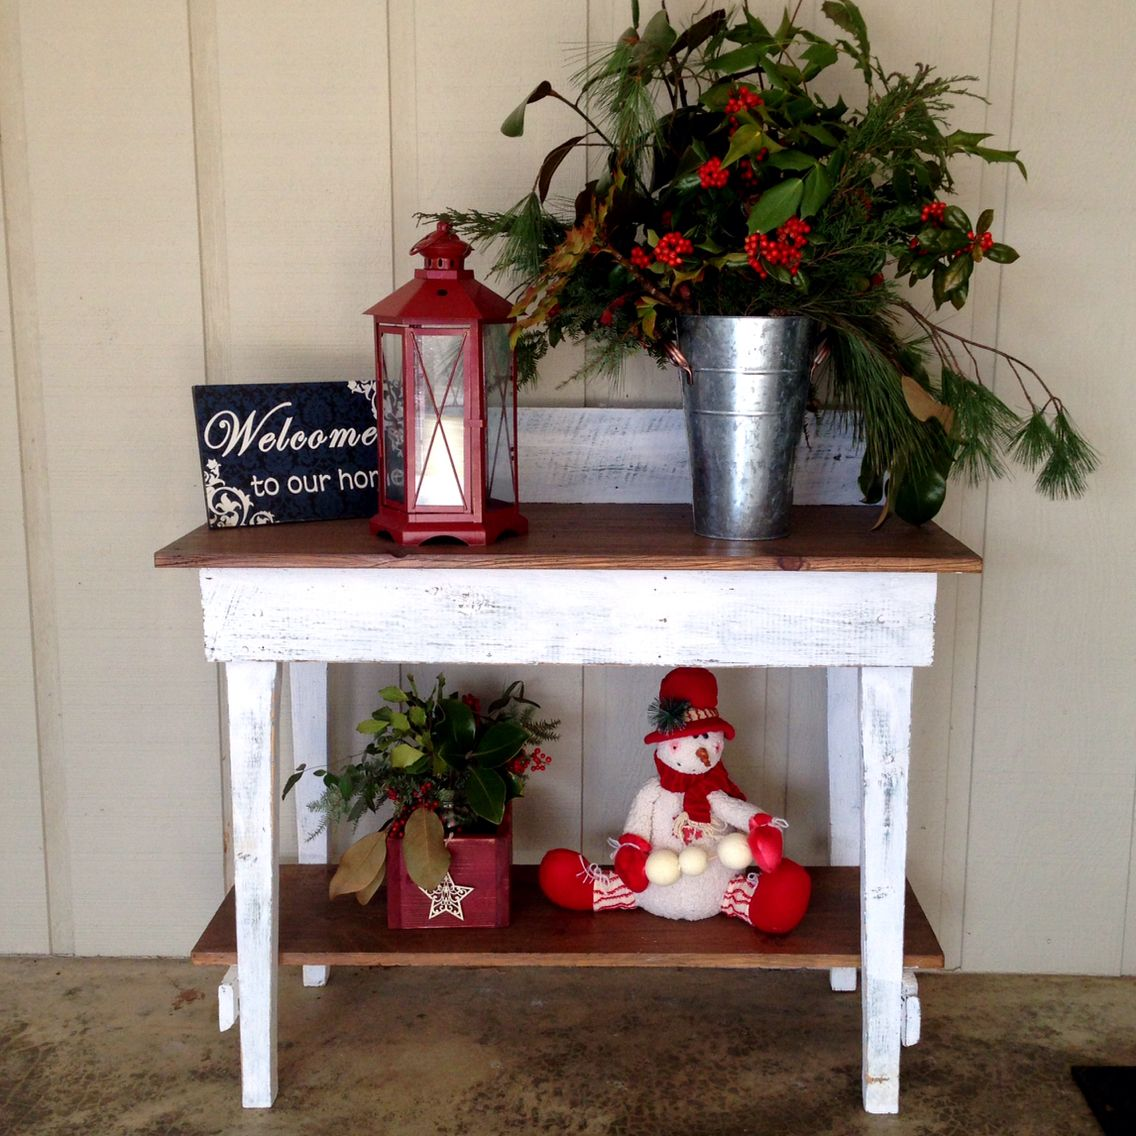 Farmhouse entryway rustic console table holly berries